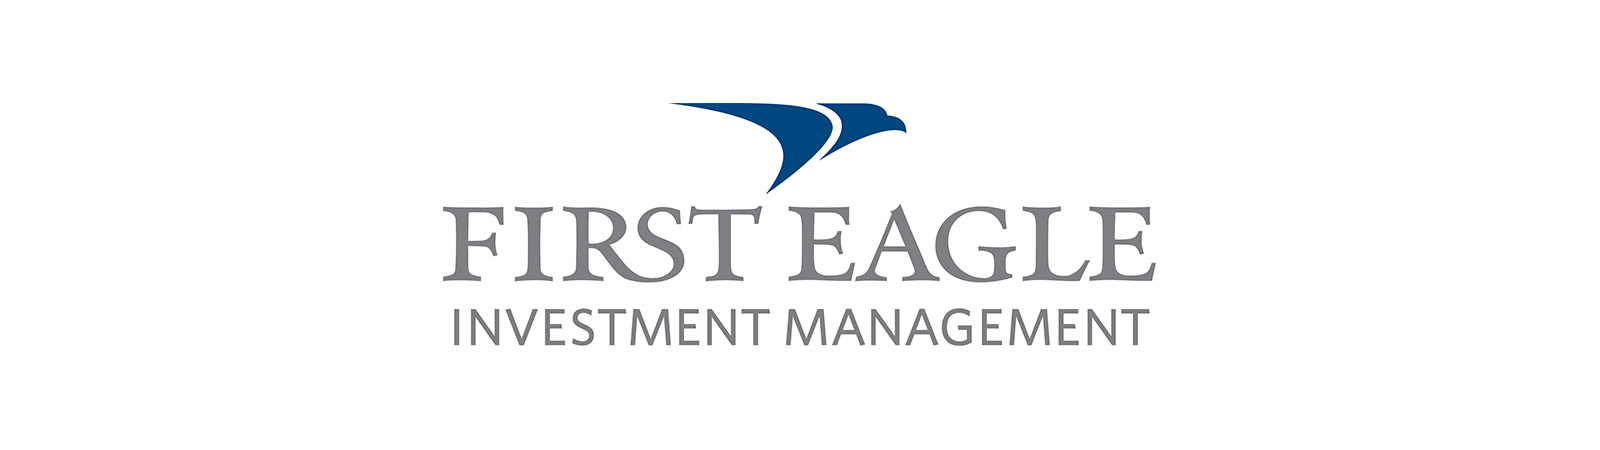 First Eagle Investment Management Financial Services